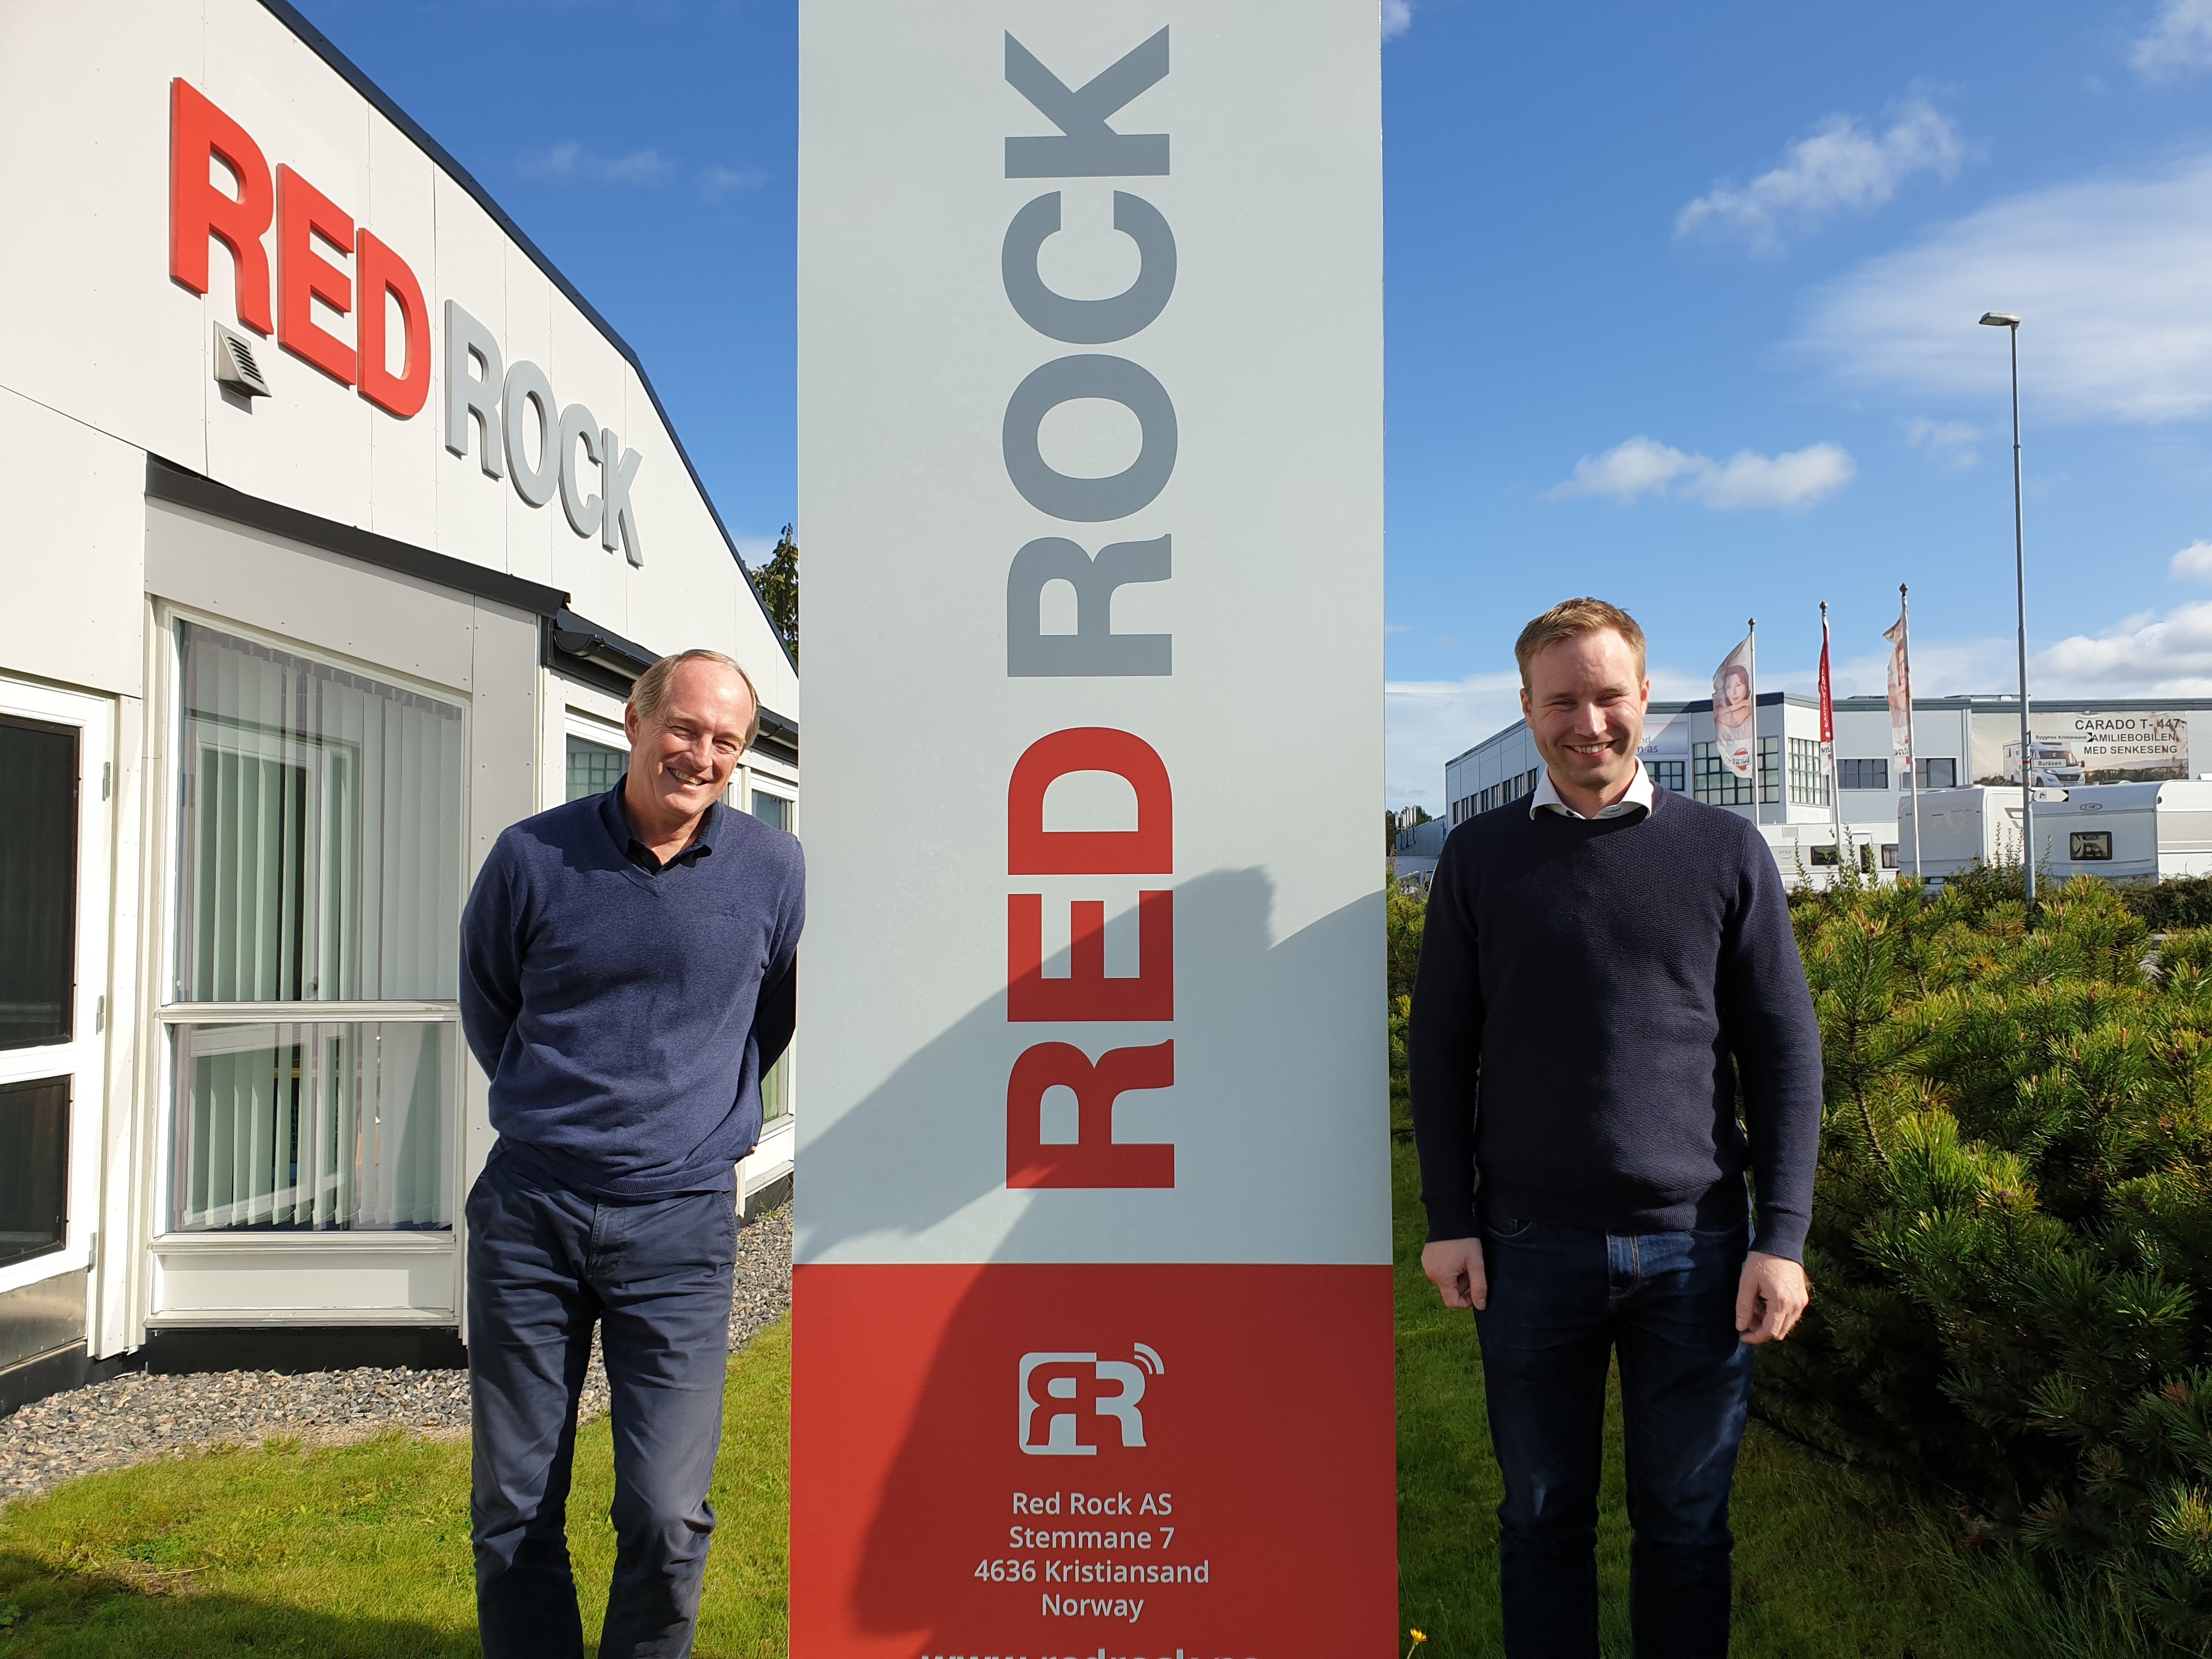 Red Rock turns 10!